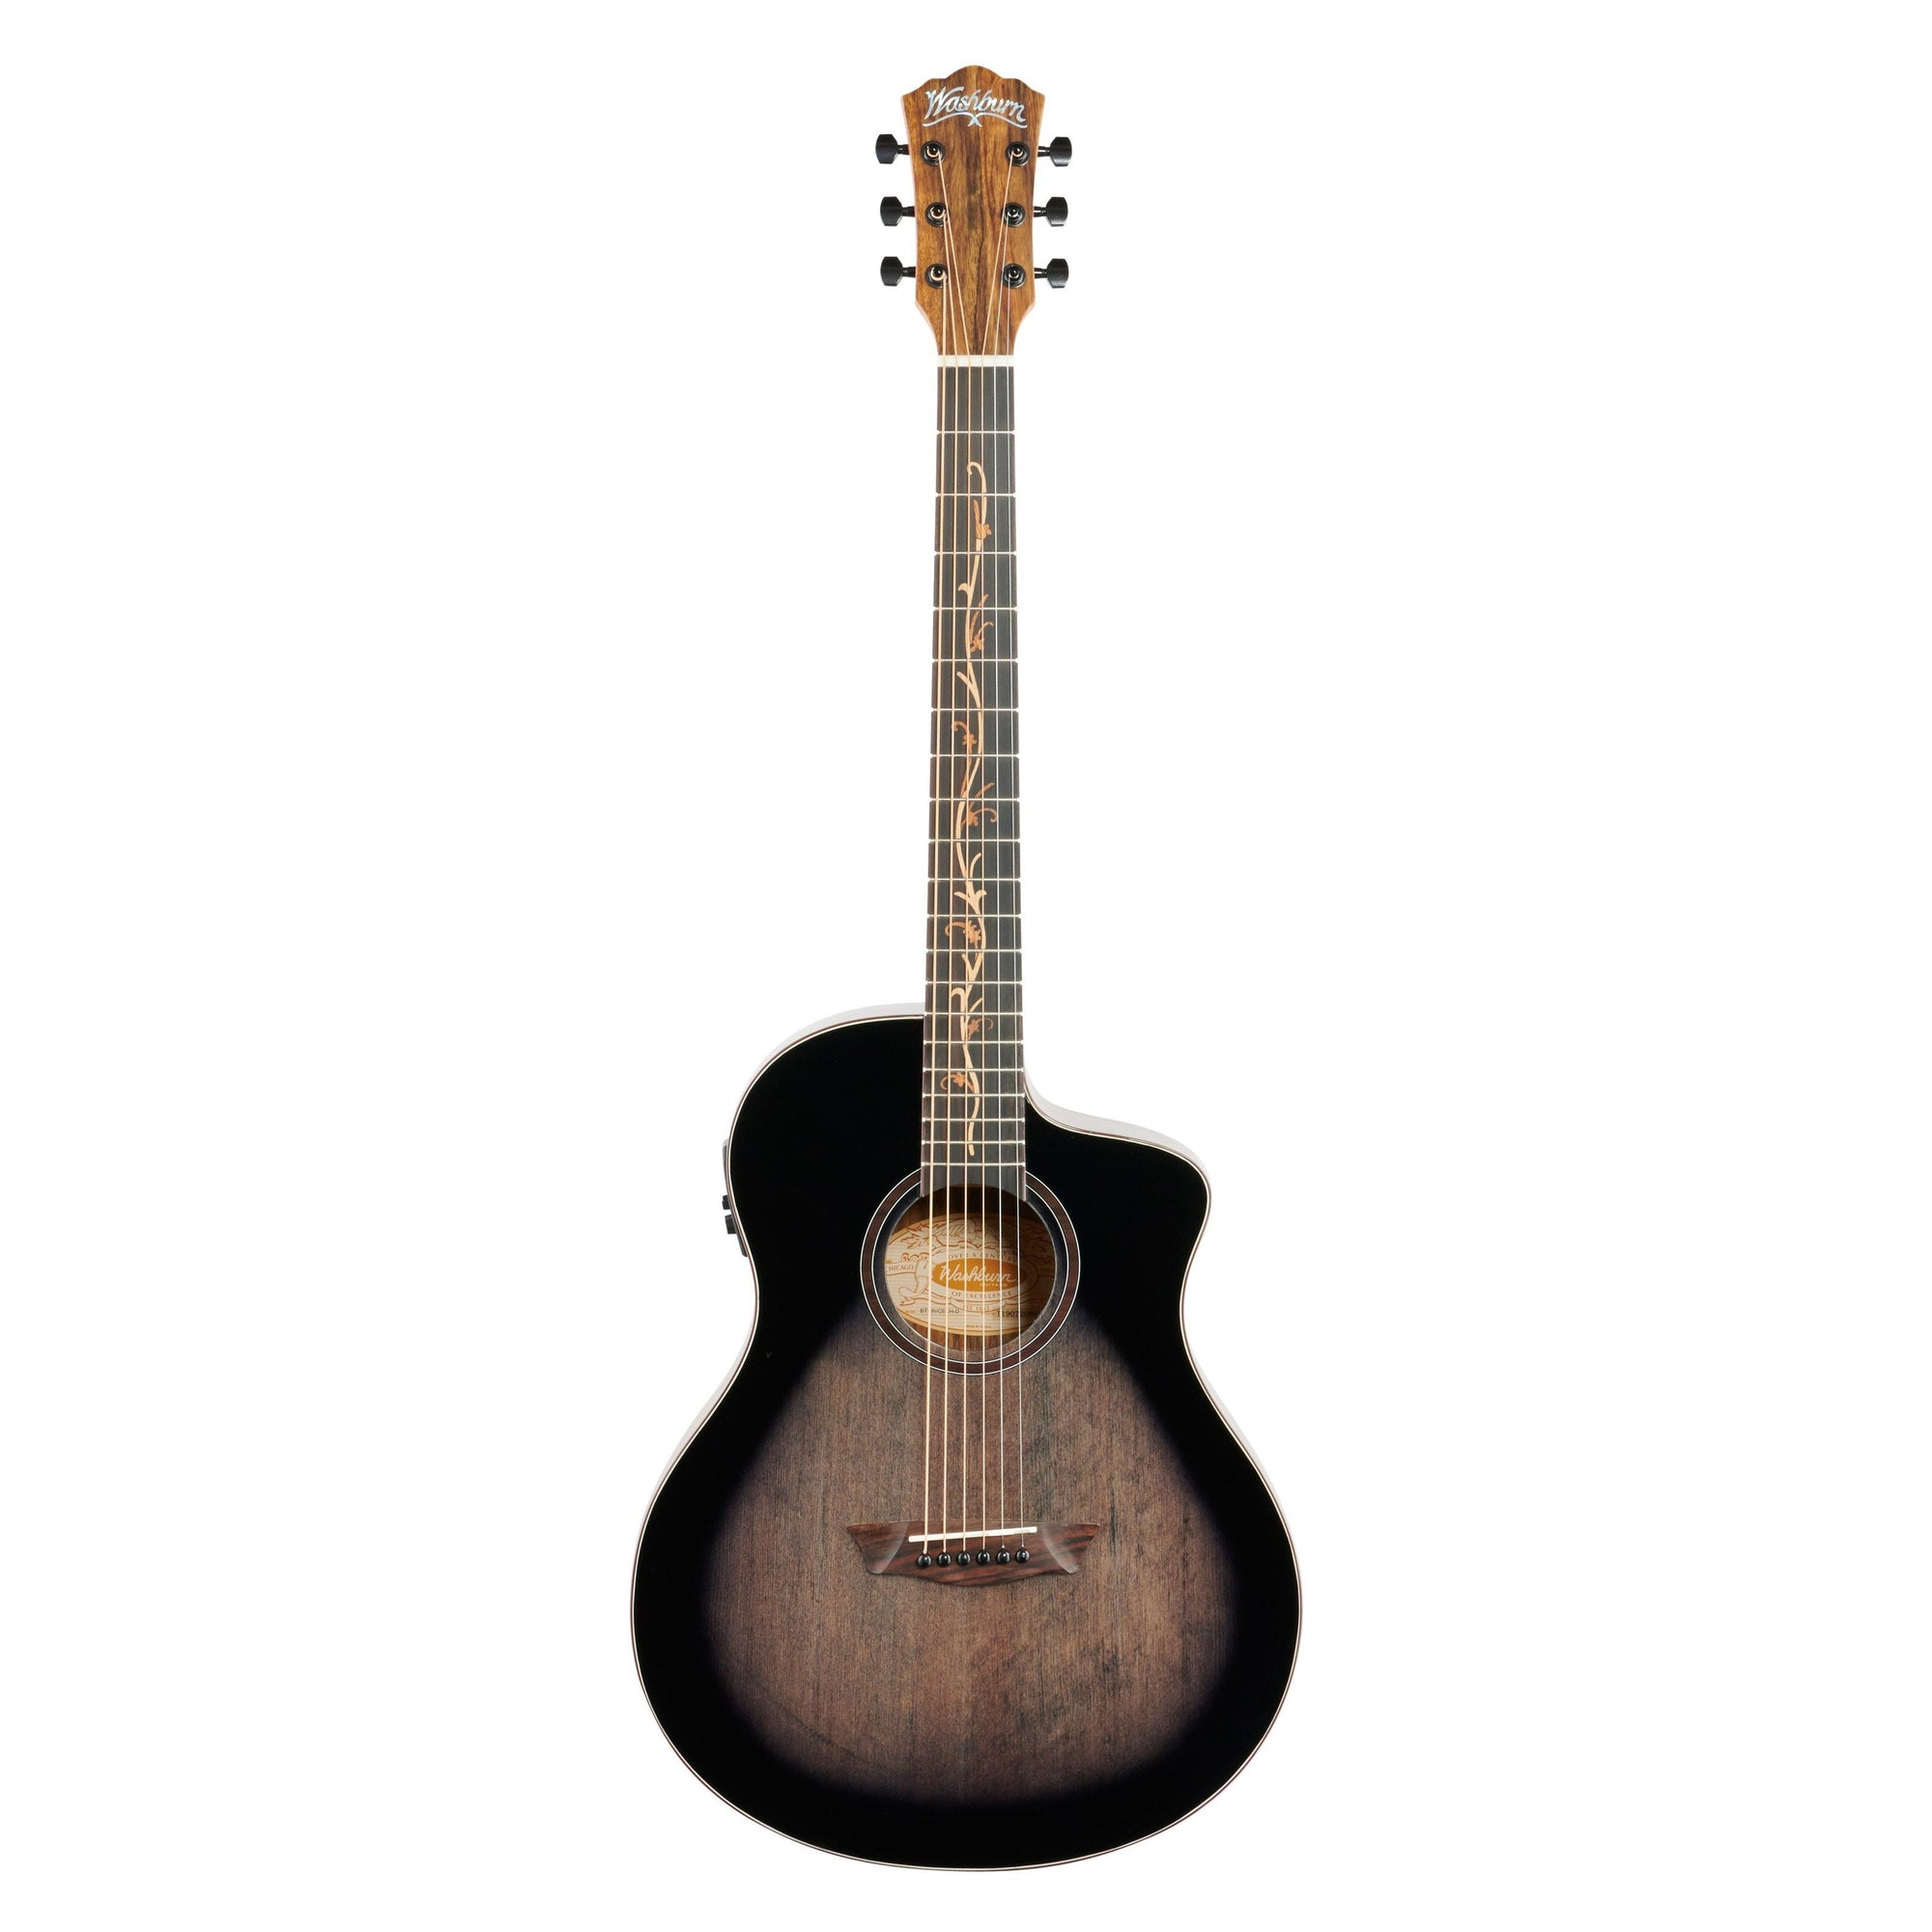 Washburn Bella Tono Vite S9V Acoustic-Electric Guitar, Charcoal Burst